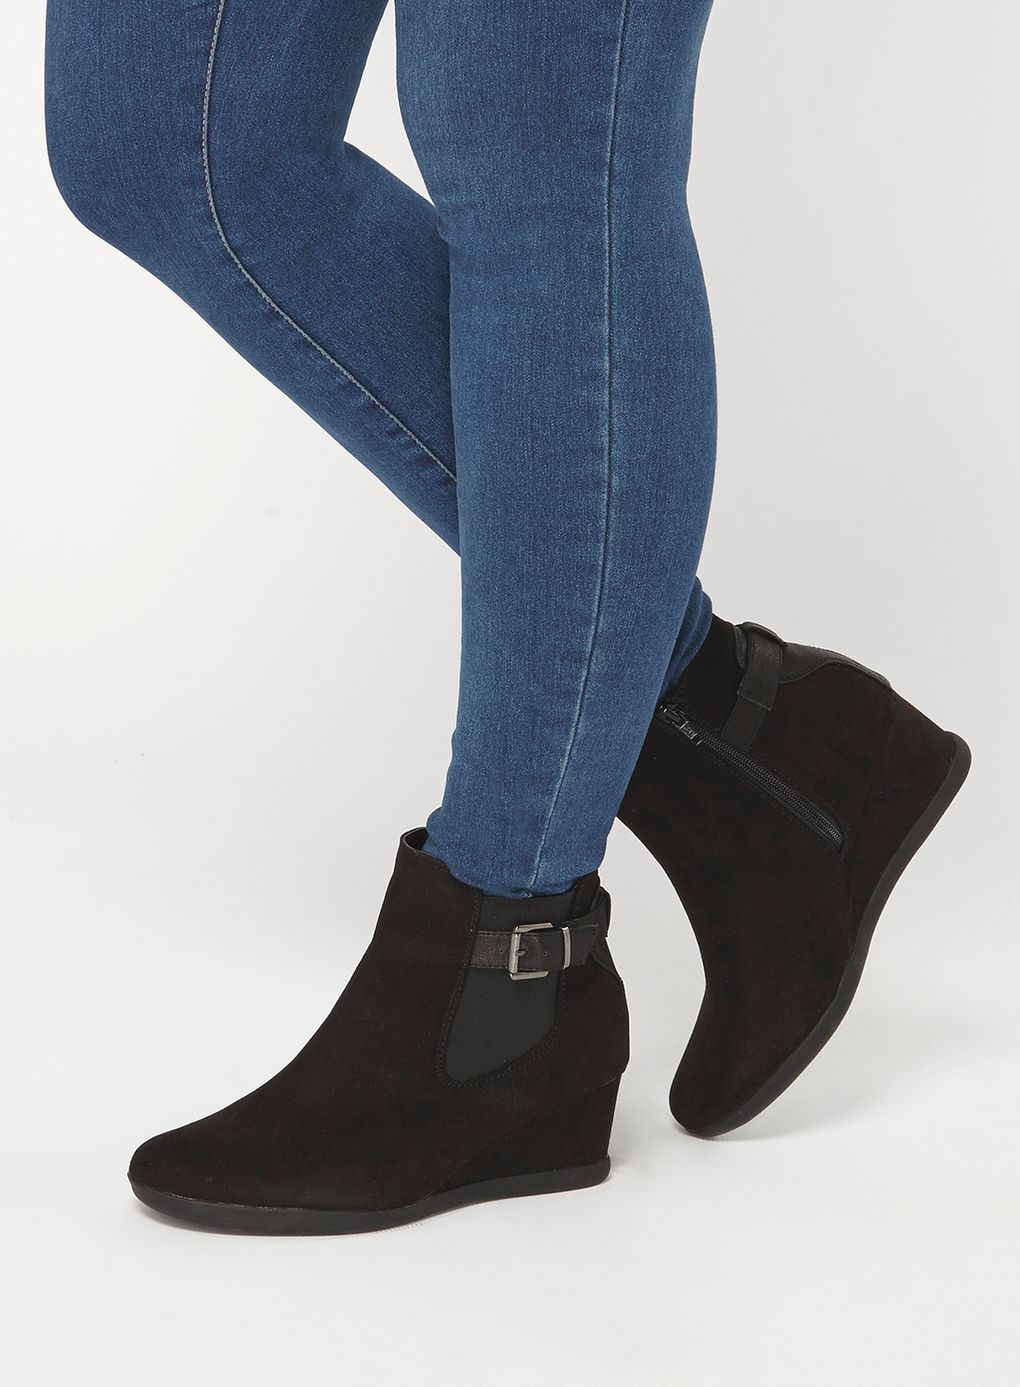 Boots, Womens boots ankle, Wide ankle boots